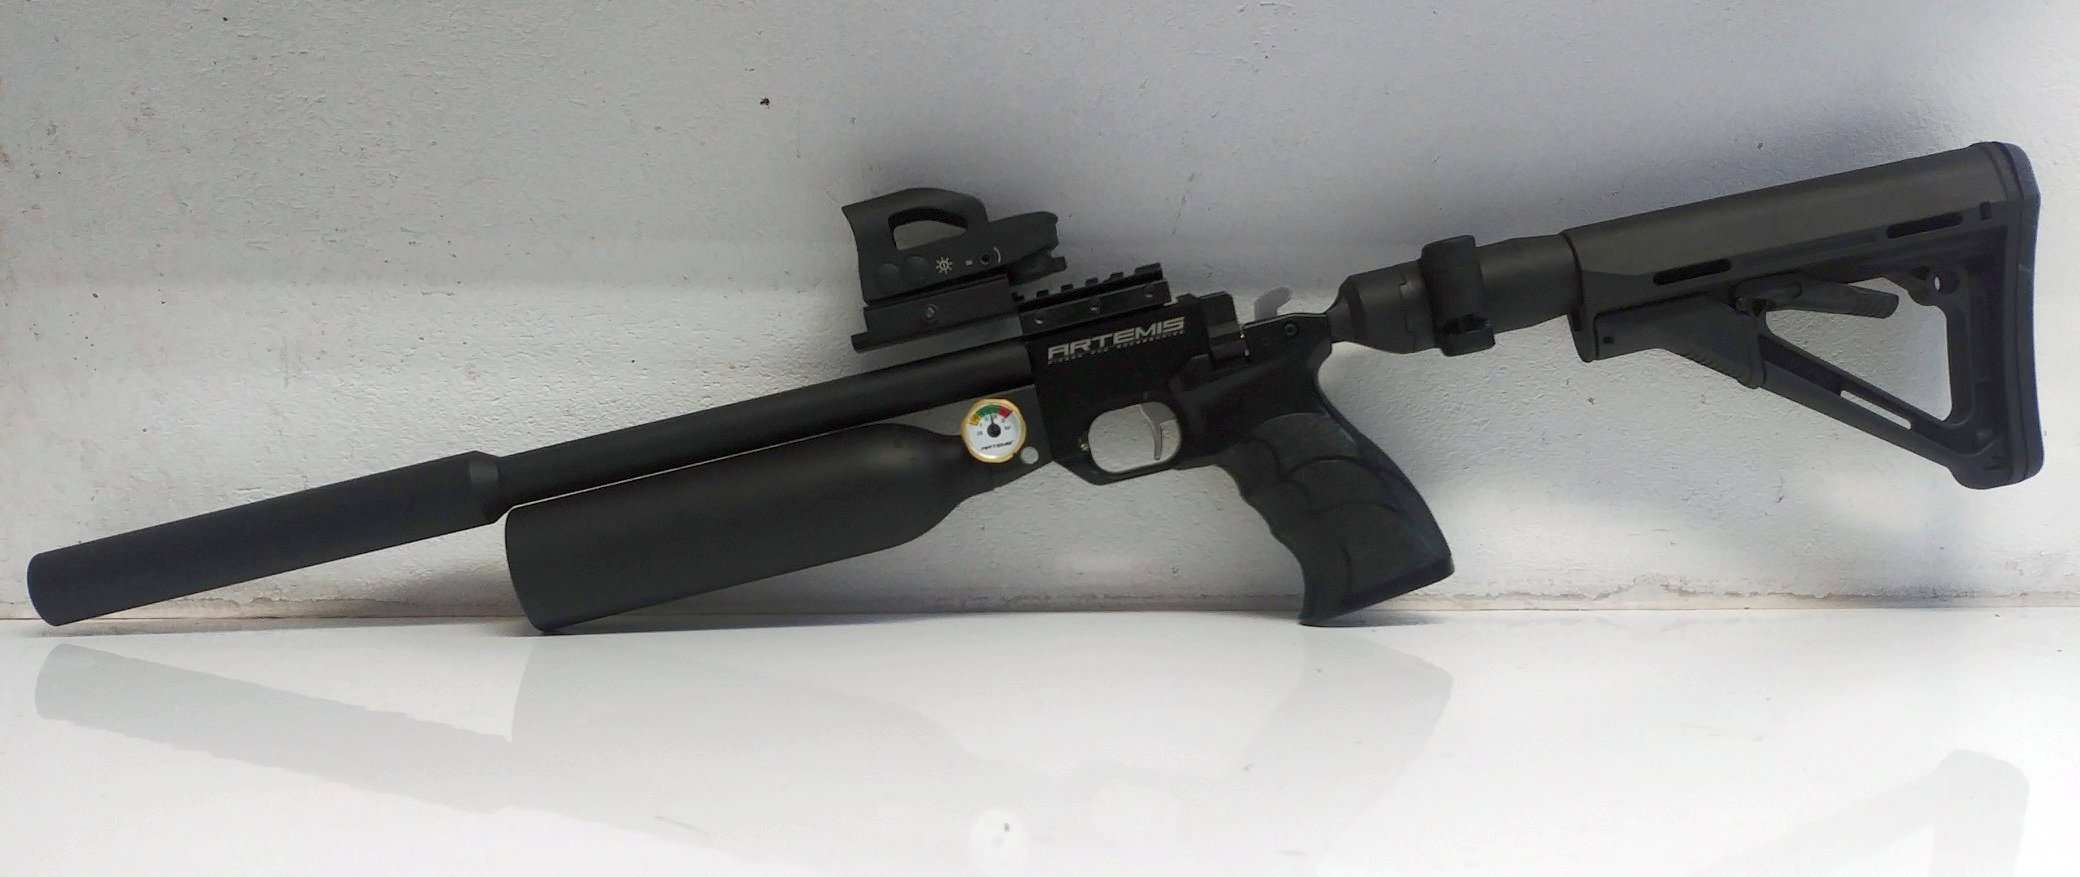 Economical Leshiy type Carbine | Airgun Talk | Airgun Warriors Forum